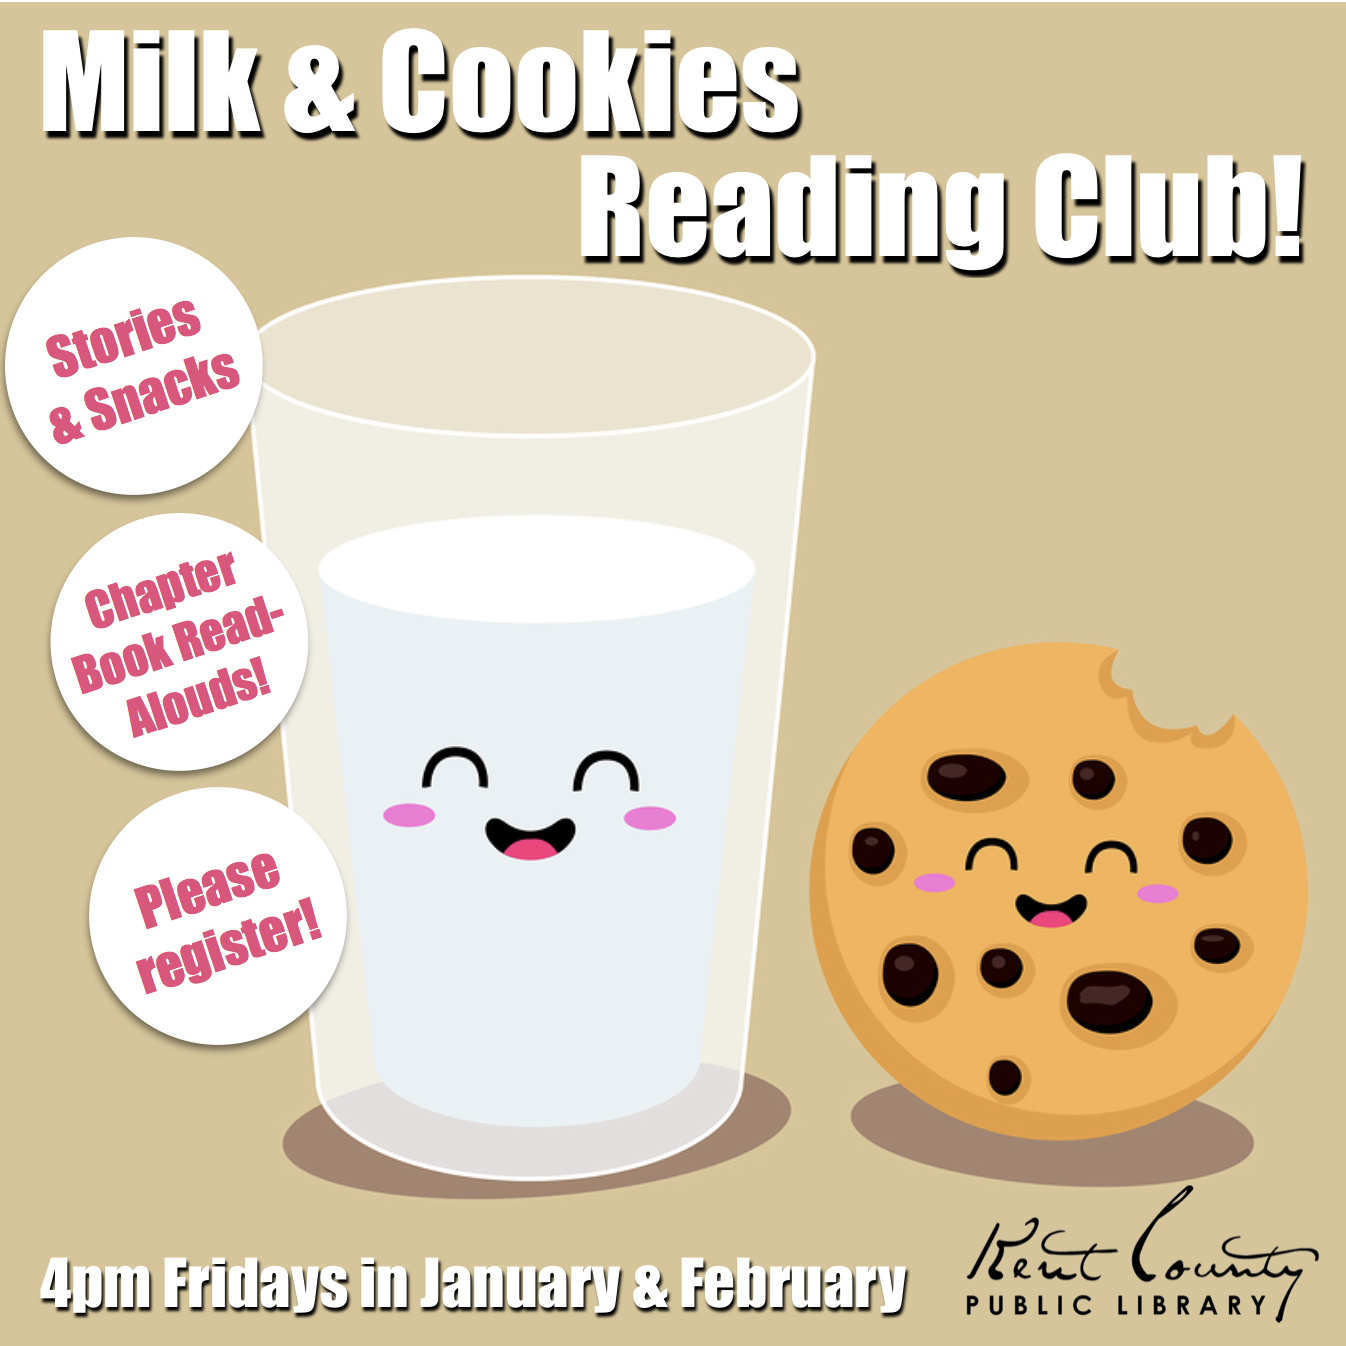 Milk and Cookies Reading Club!